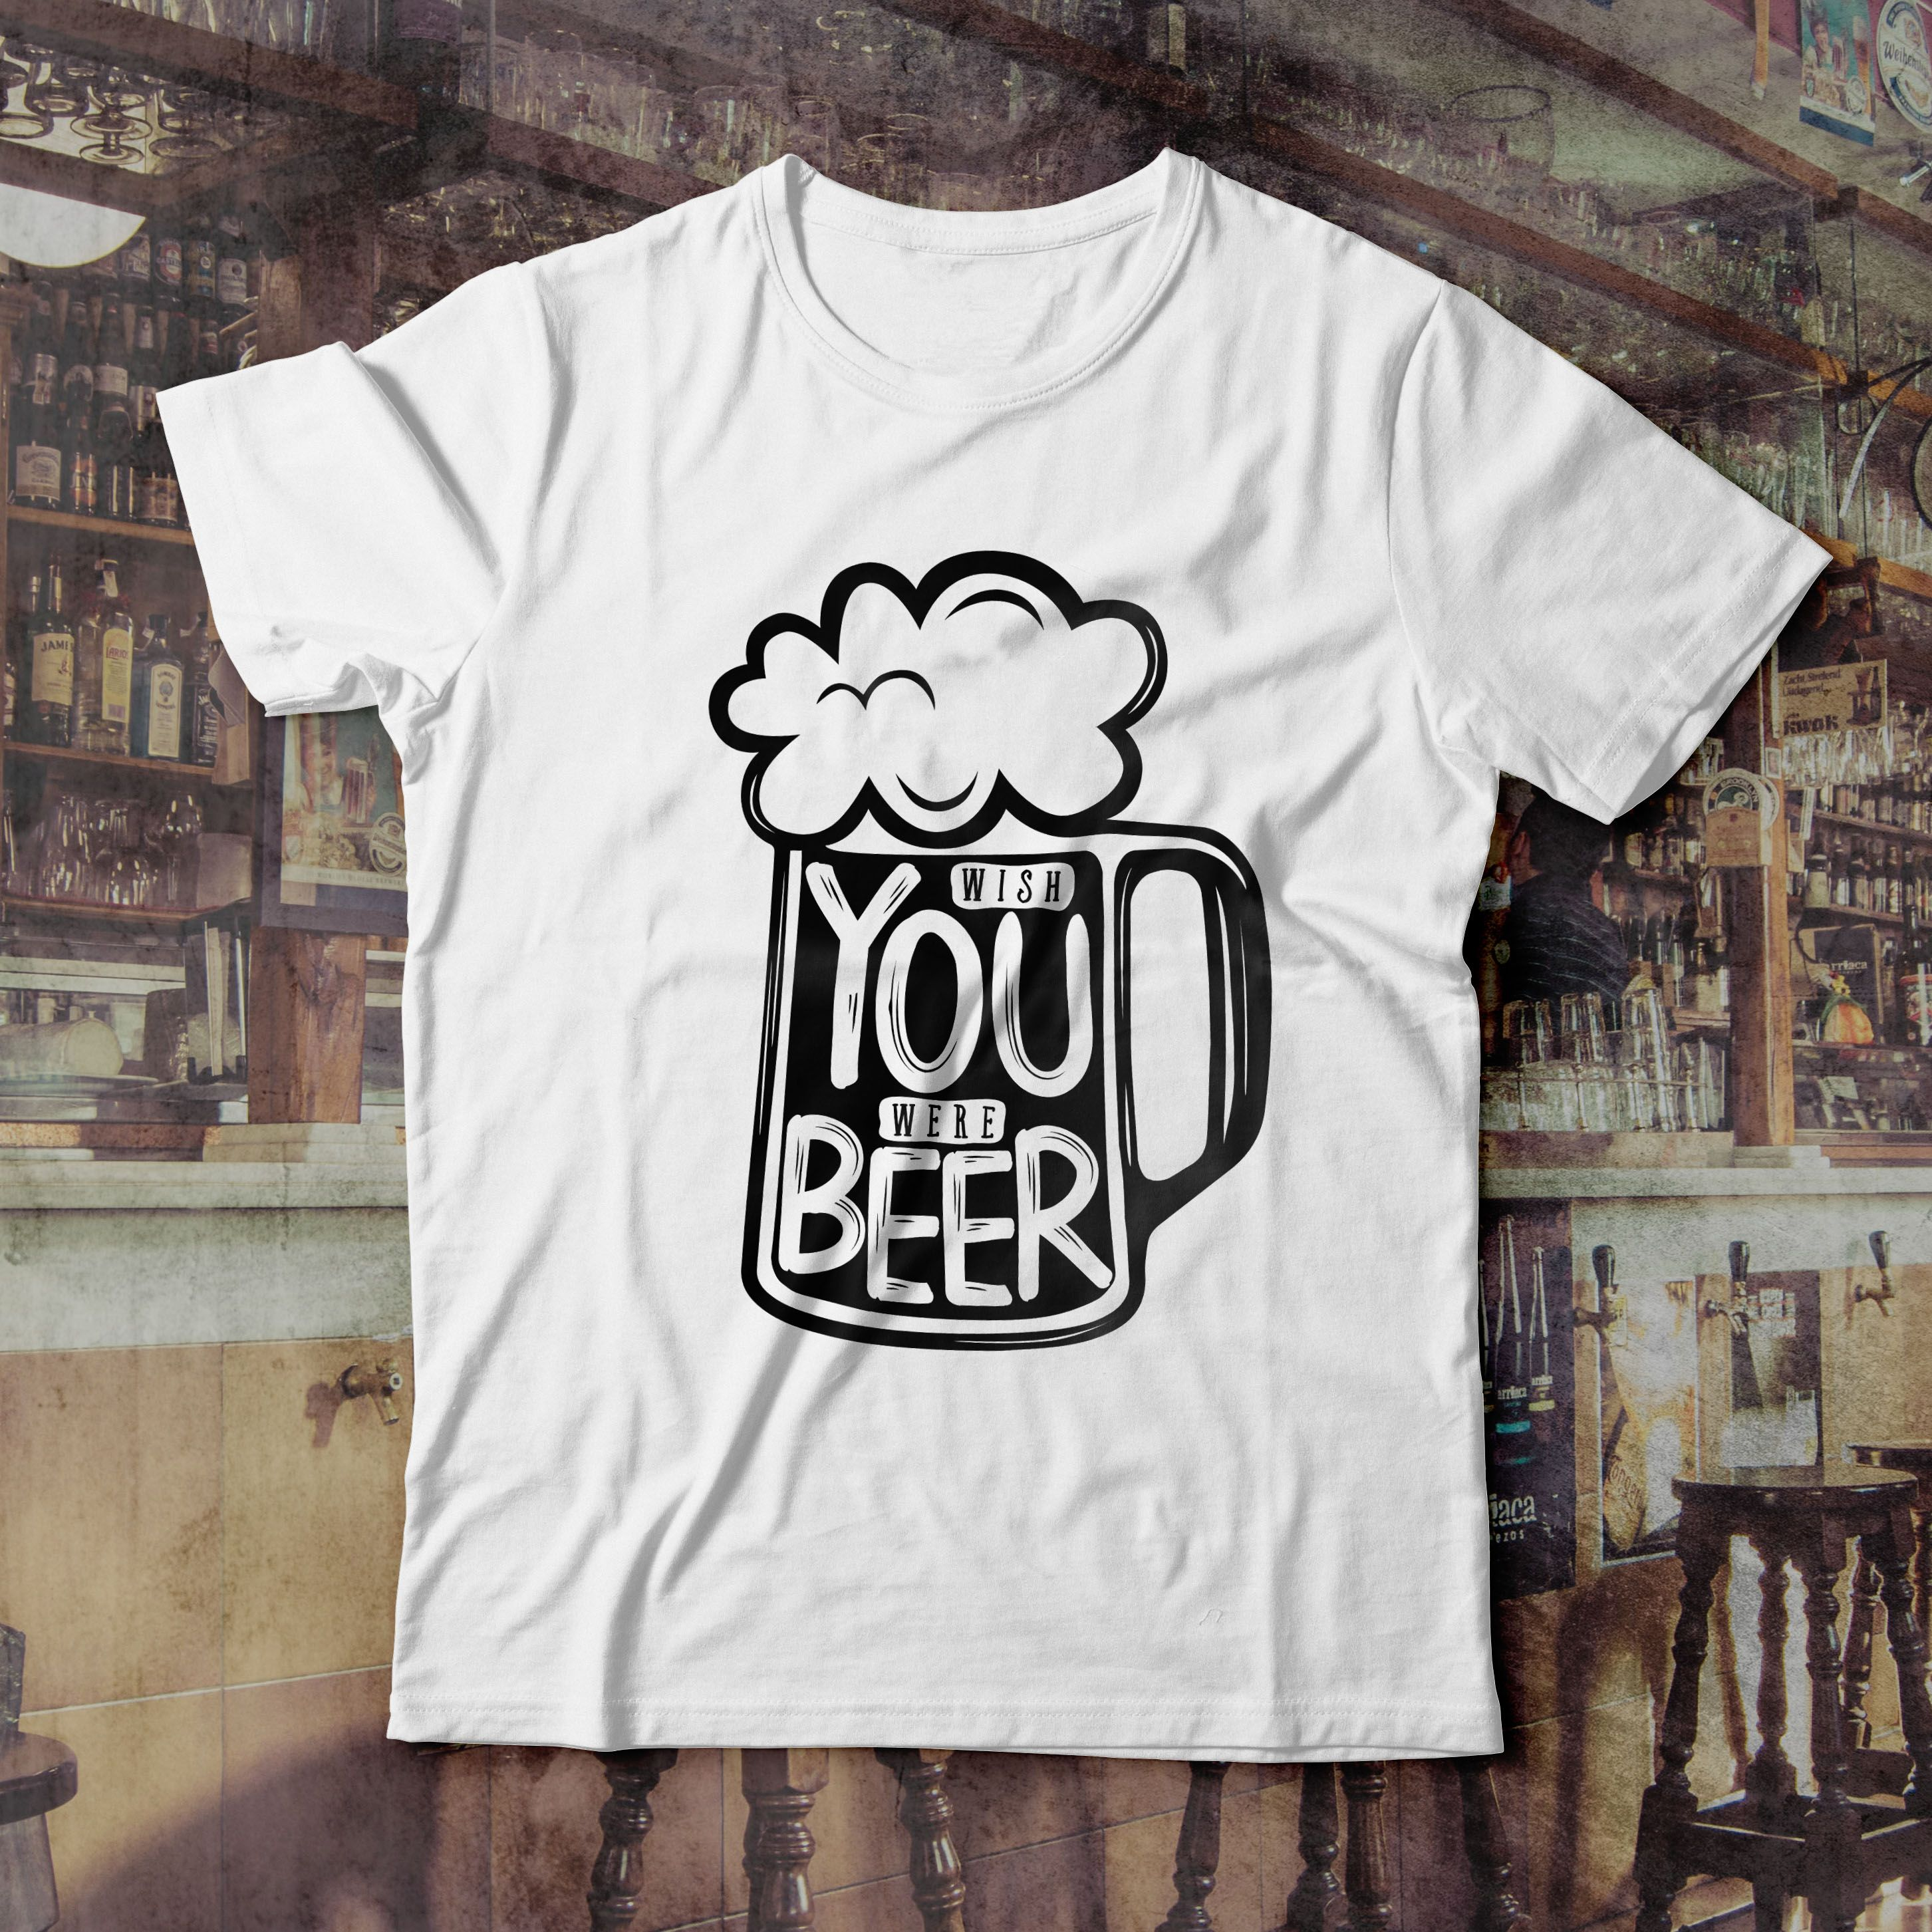 Wish You Were Beer T Shirt Beer Wishyouwerebeer Funny Quote Quotes Sayings Words Tshirt Tshirtdesign Shirts T Shirts With Sayings Shirts With Sayings